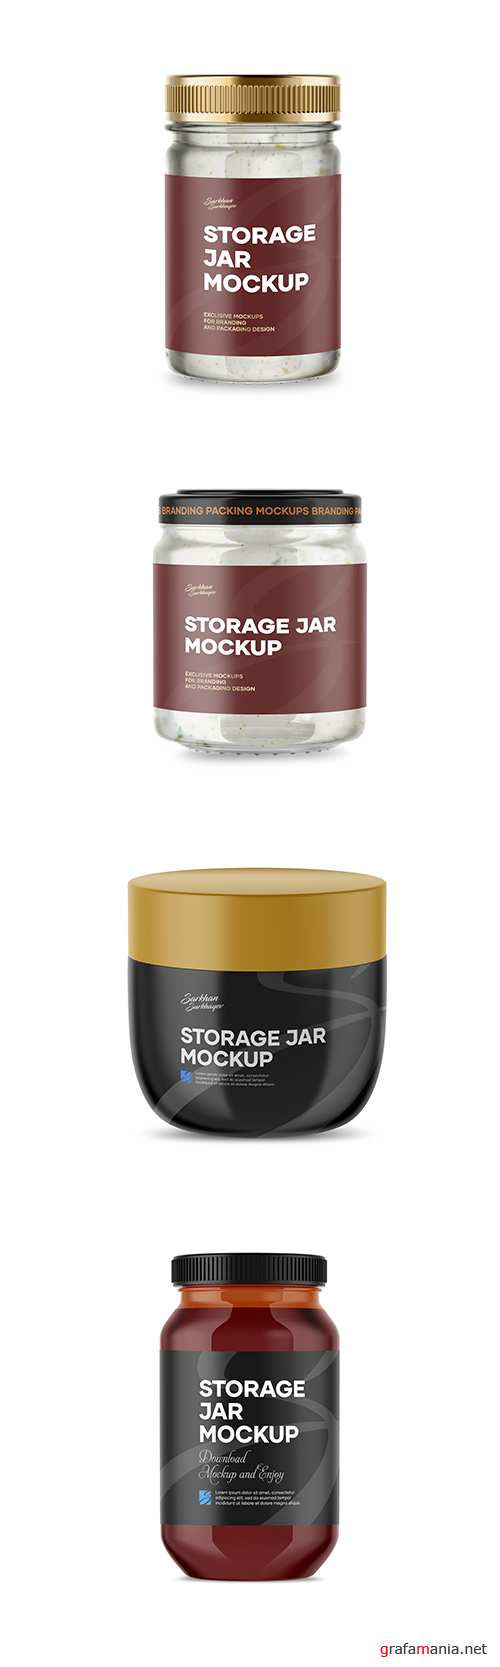 Storage Jar Mockup Template